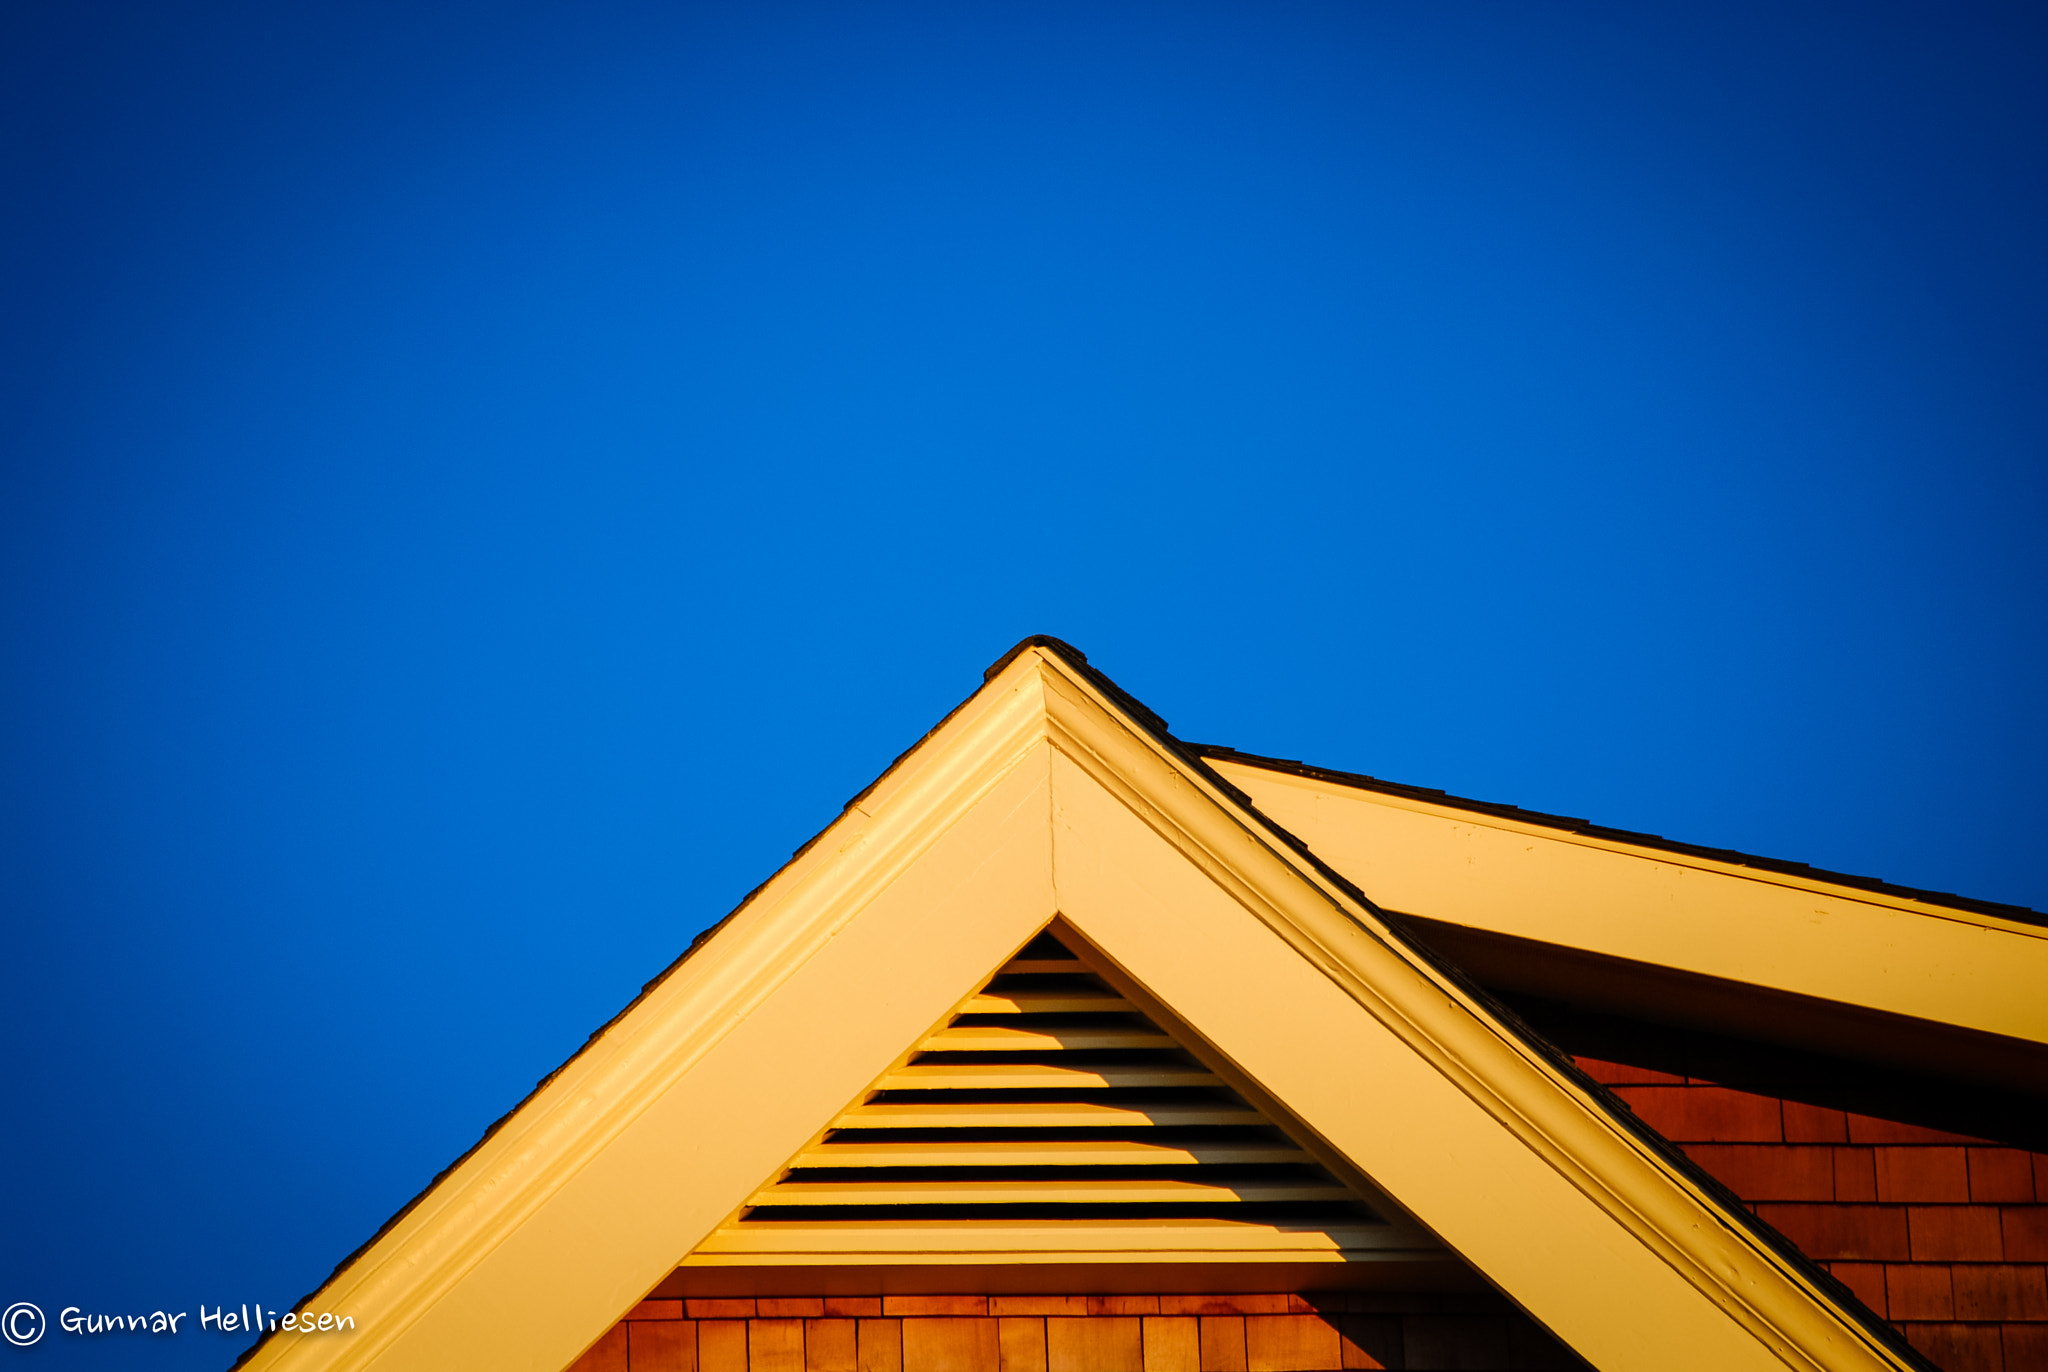 Photograph sunset gable by Gunnar Helliesen on 500px